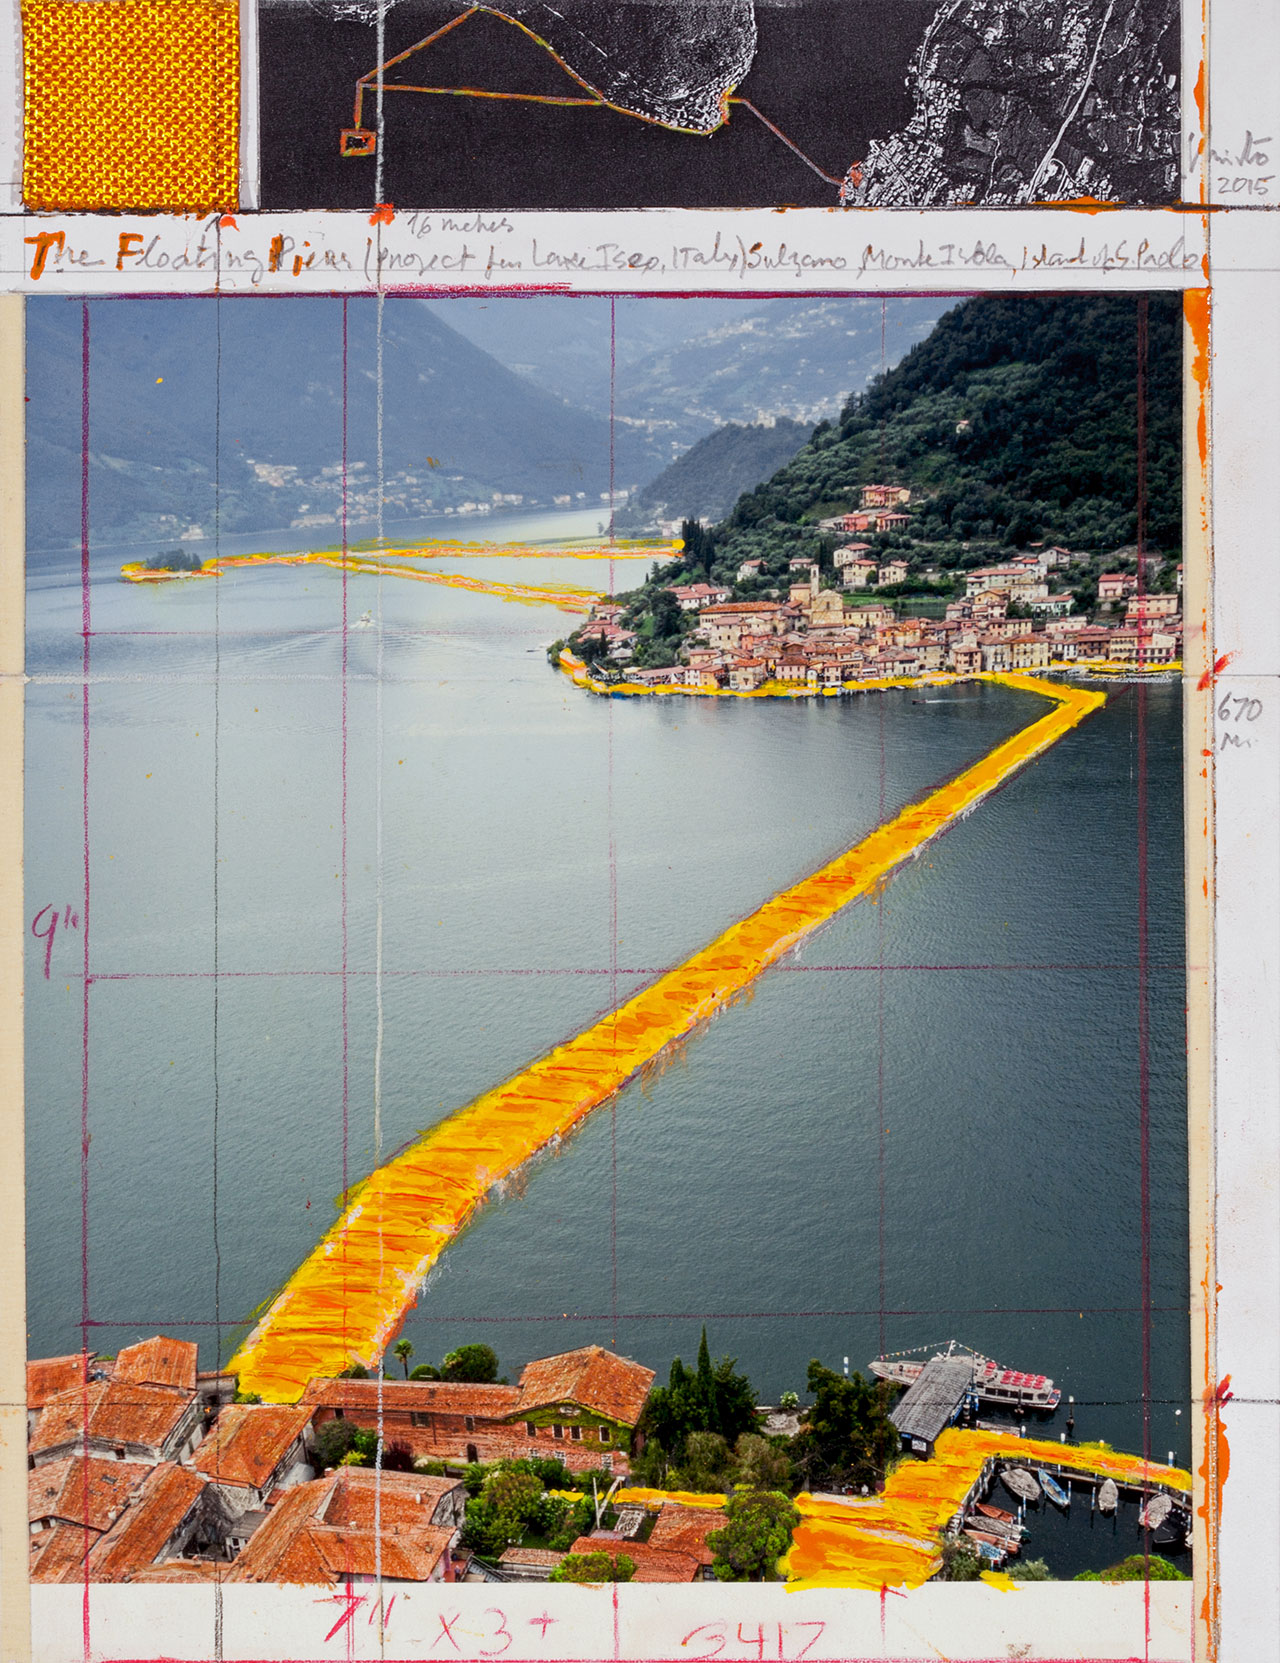 """Christo,Collage 2015.11 x 8 1/2"""" (28 x 21.5 cm).Pencil, wax crayon, enamel paint, photograph by Wolfgang Volz, aerial photograph and fabric sample.Photo by André Grossmann© 2015 Christo."""